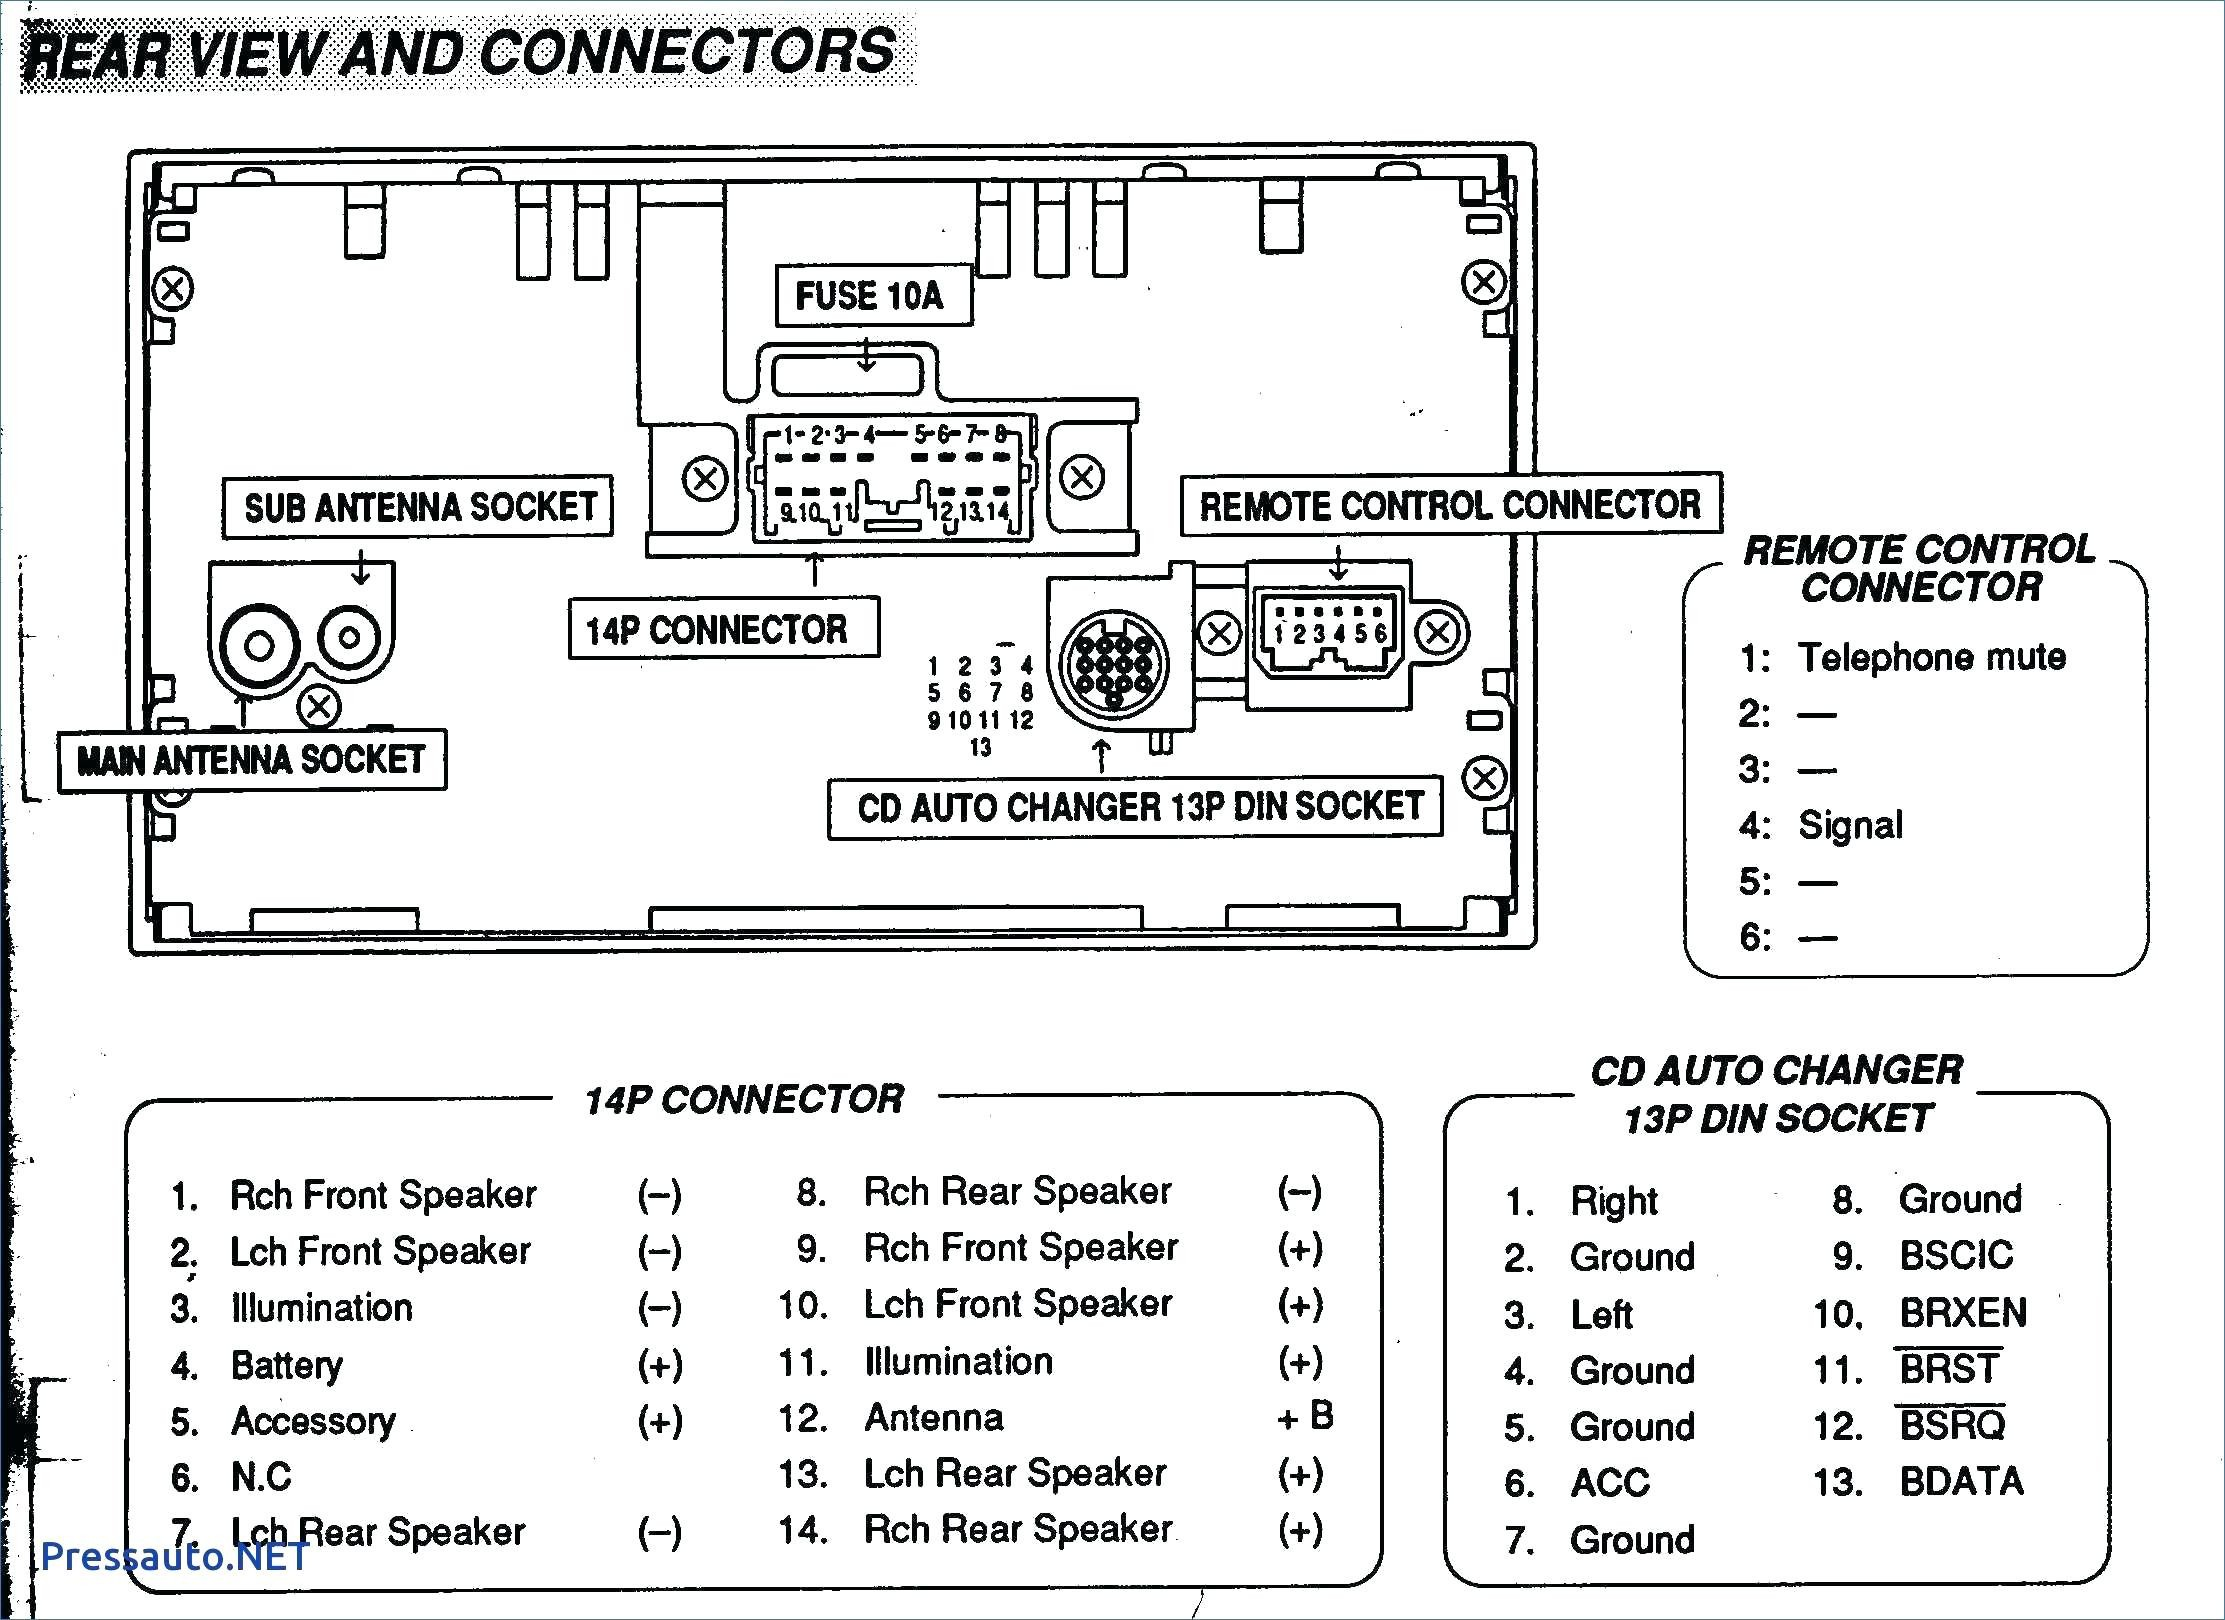 Scion Tc Radio Wiring Diagram from detoxicrecenze.com